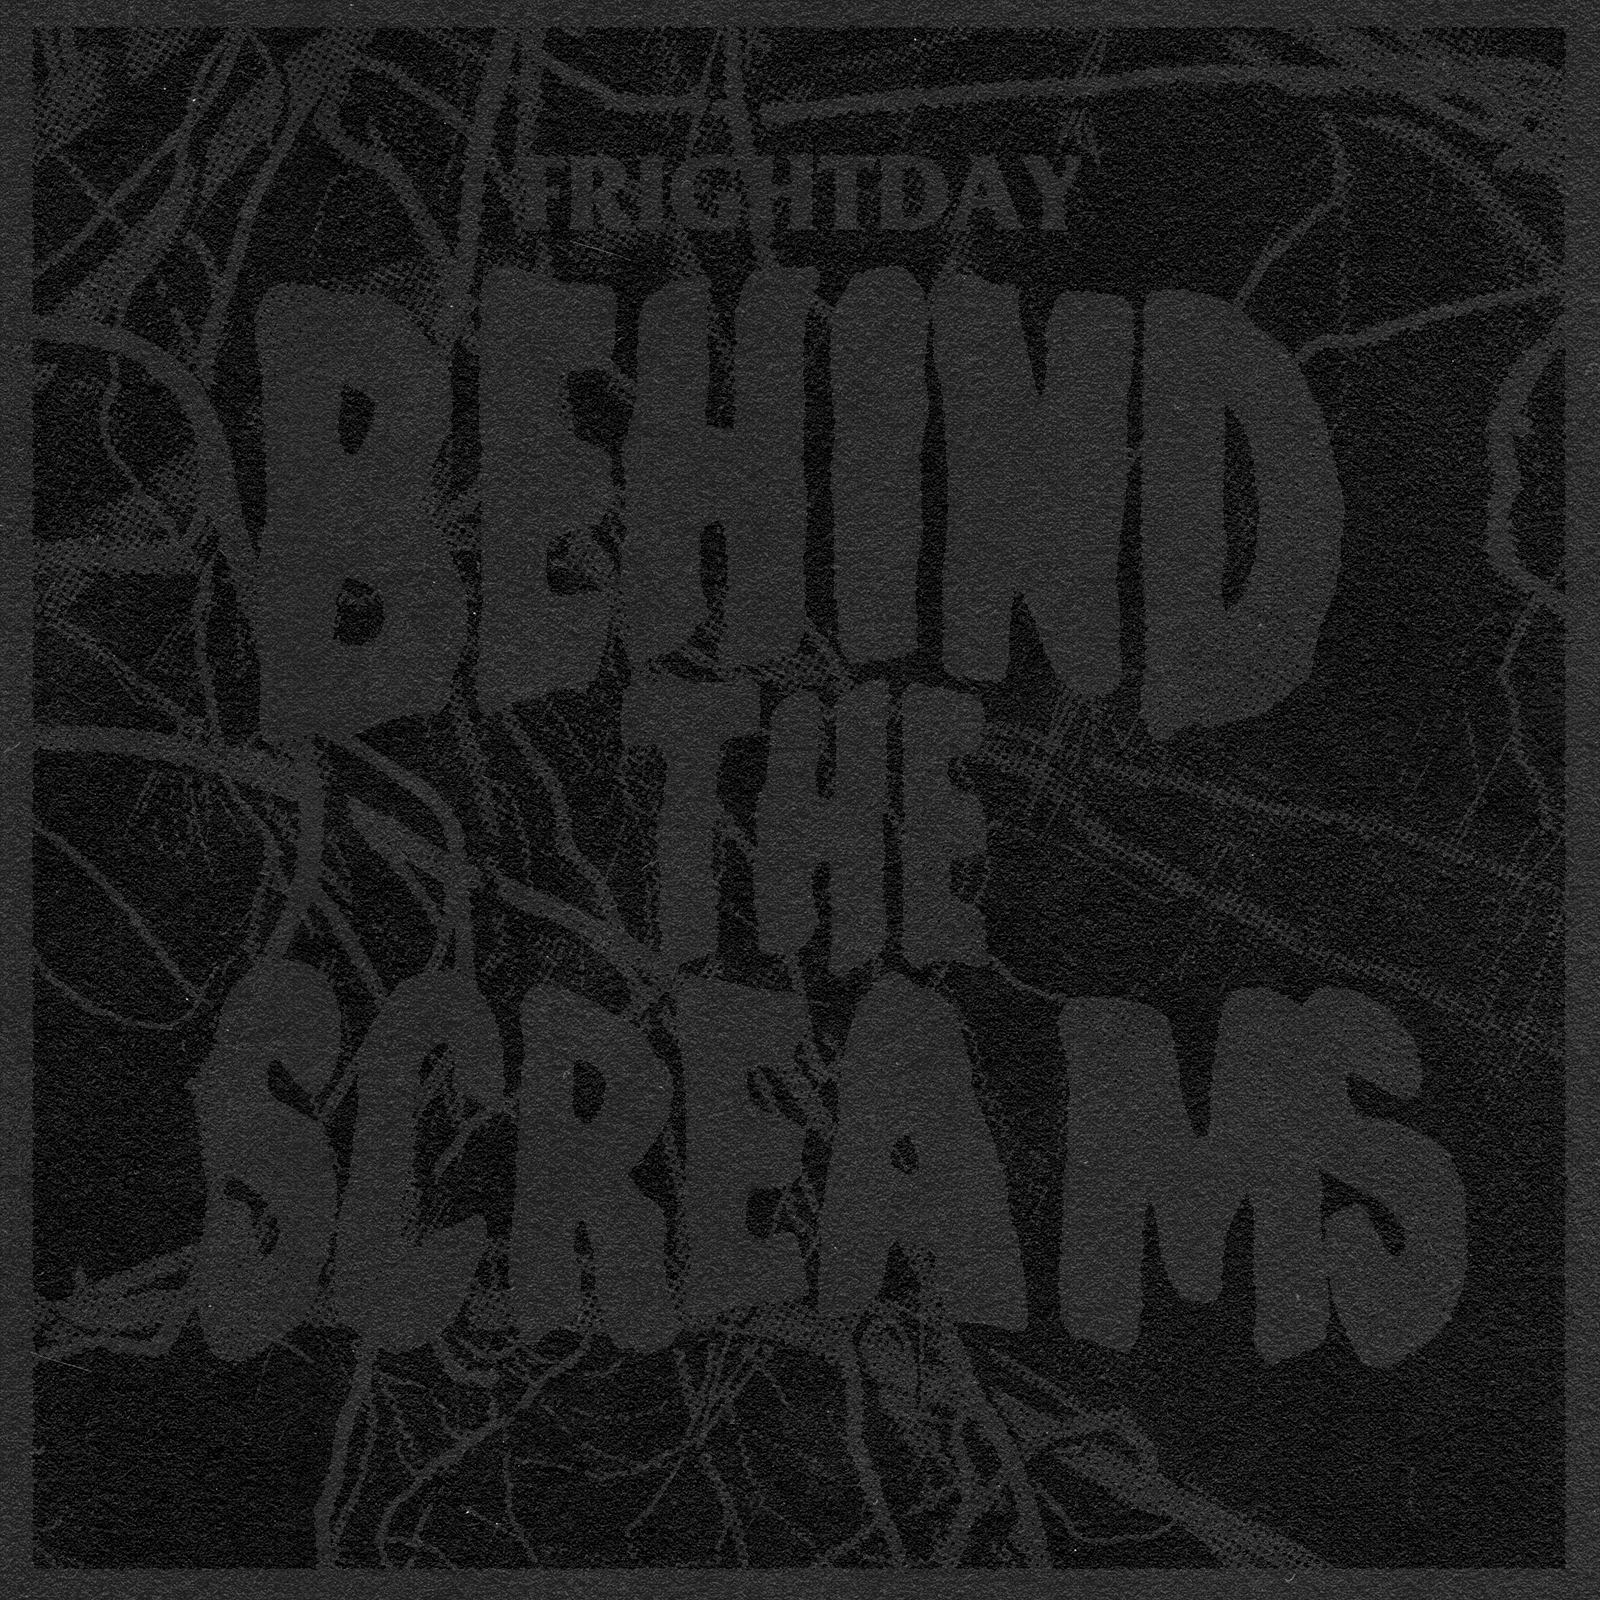 Behind the Screams: Dogs (Excerpt)